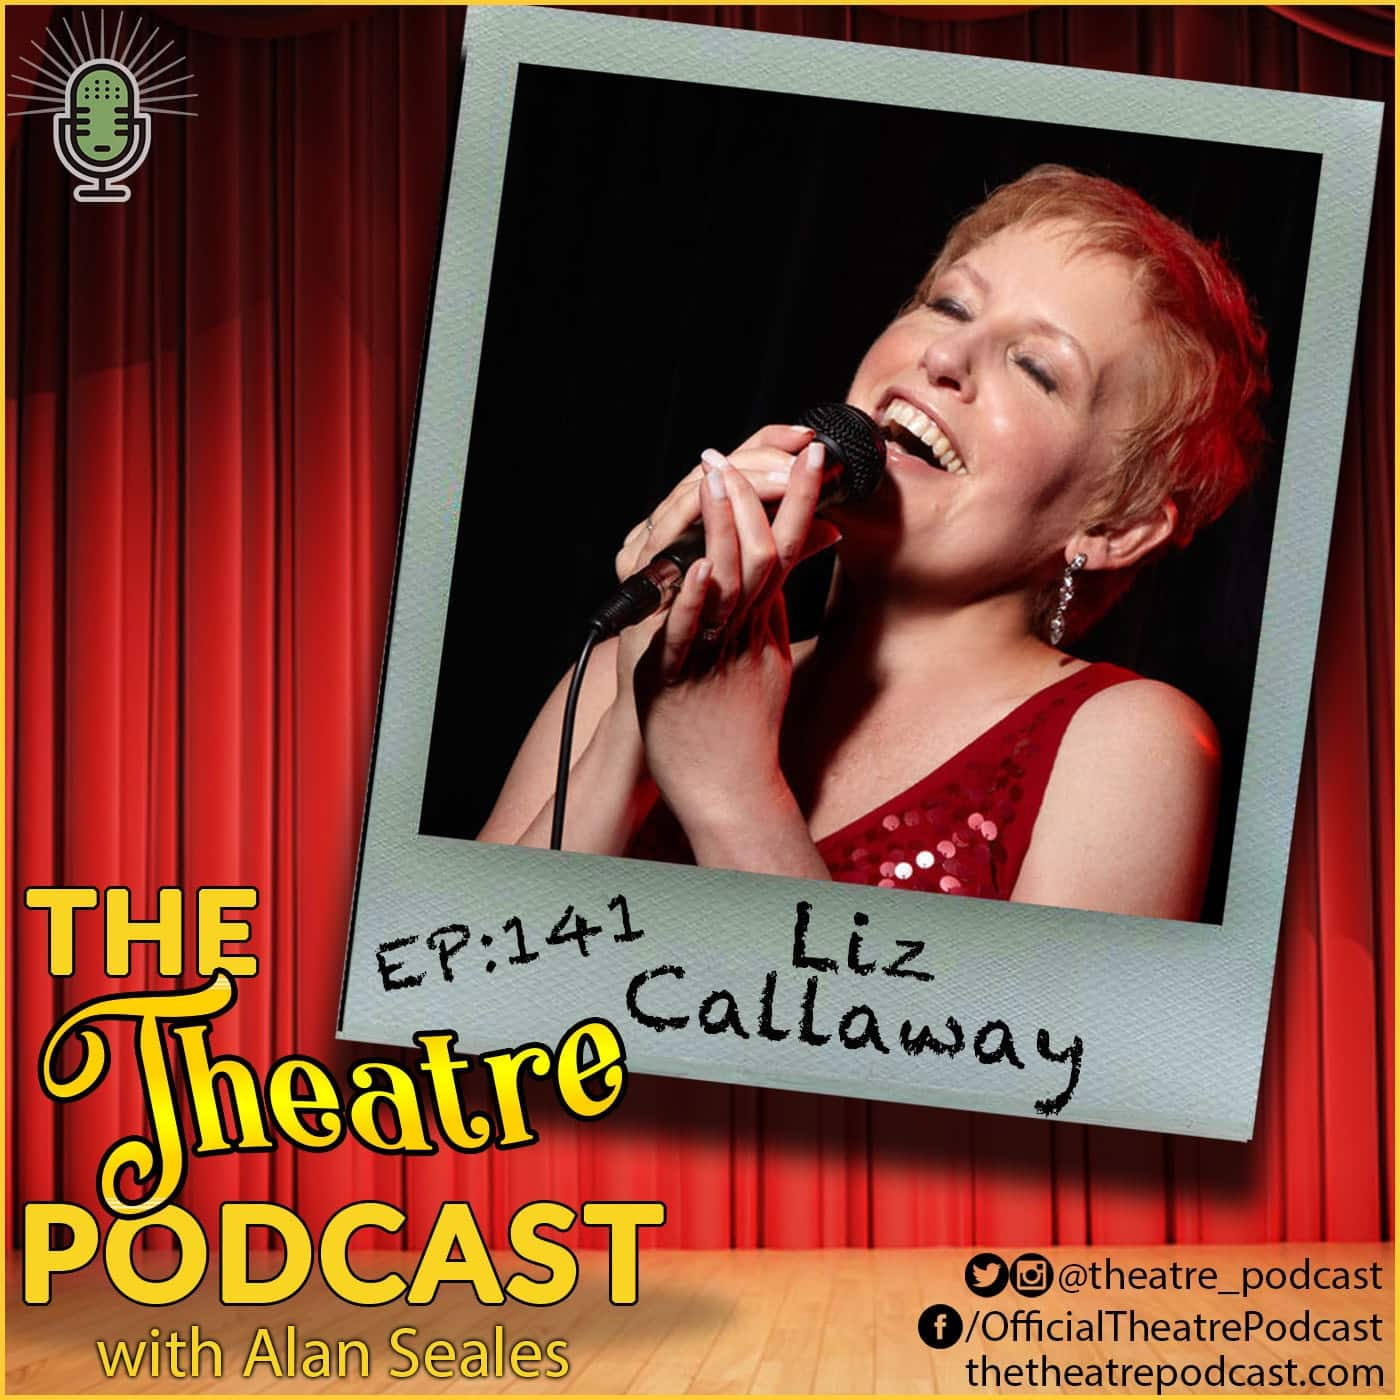 Ep141 - Liz Callaway: Disney's Anastasia, Broadway by the Year, Merrily, CATS and many more